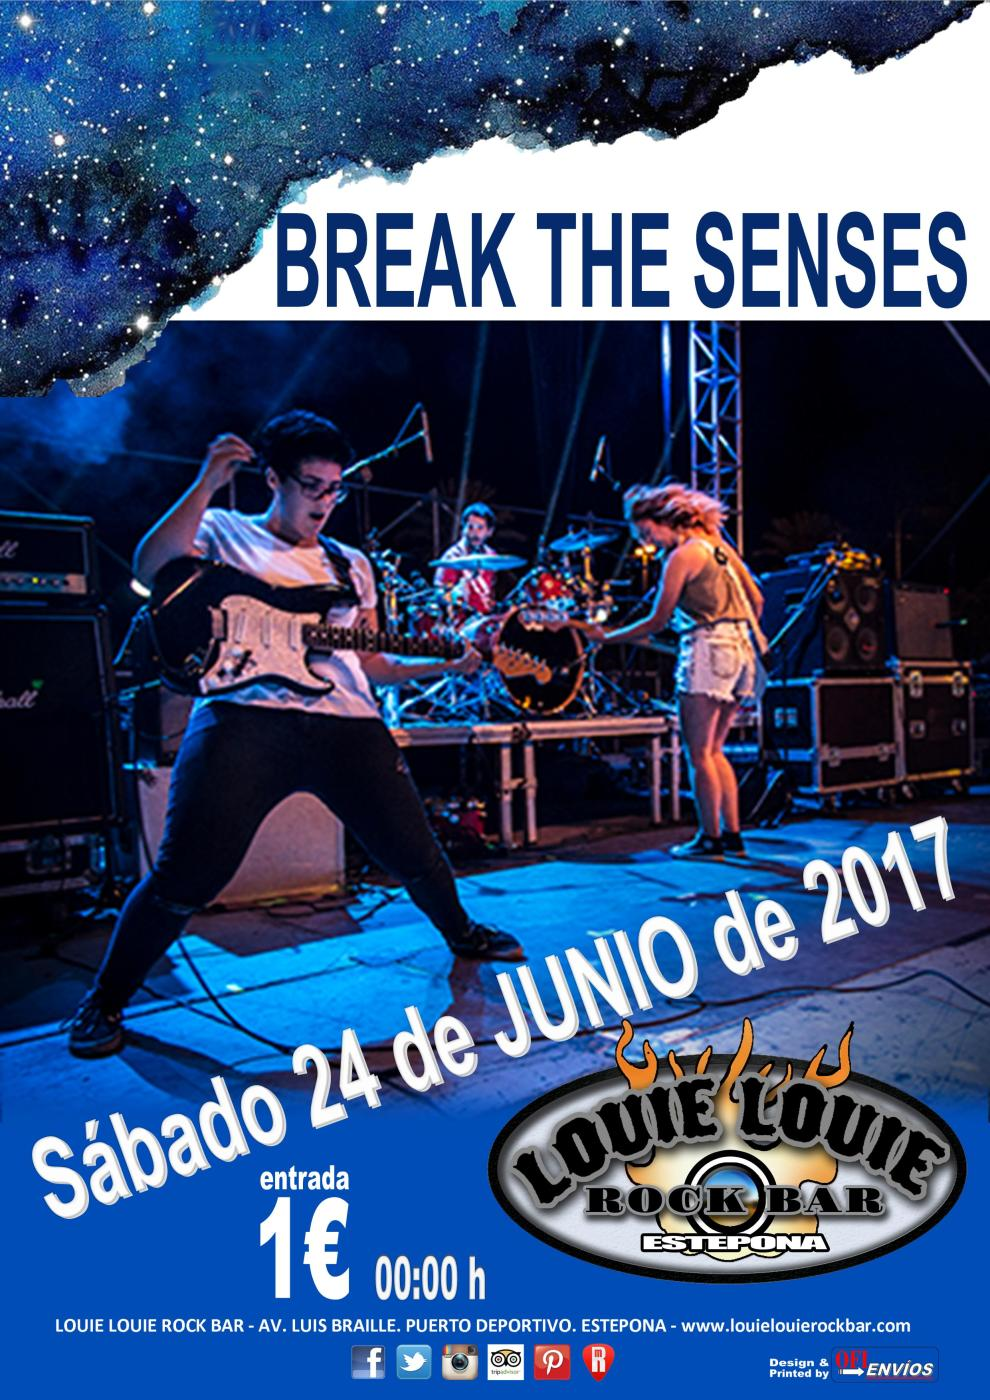 Cartel promocional de Break The Senses